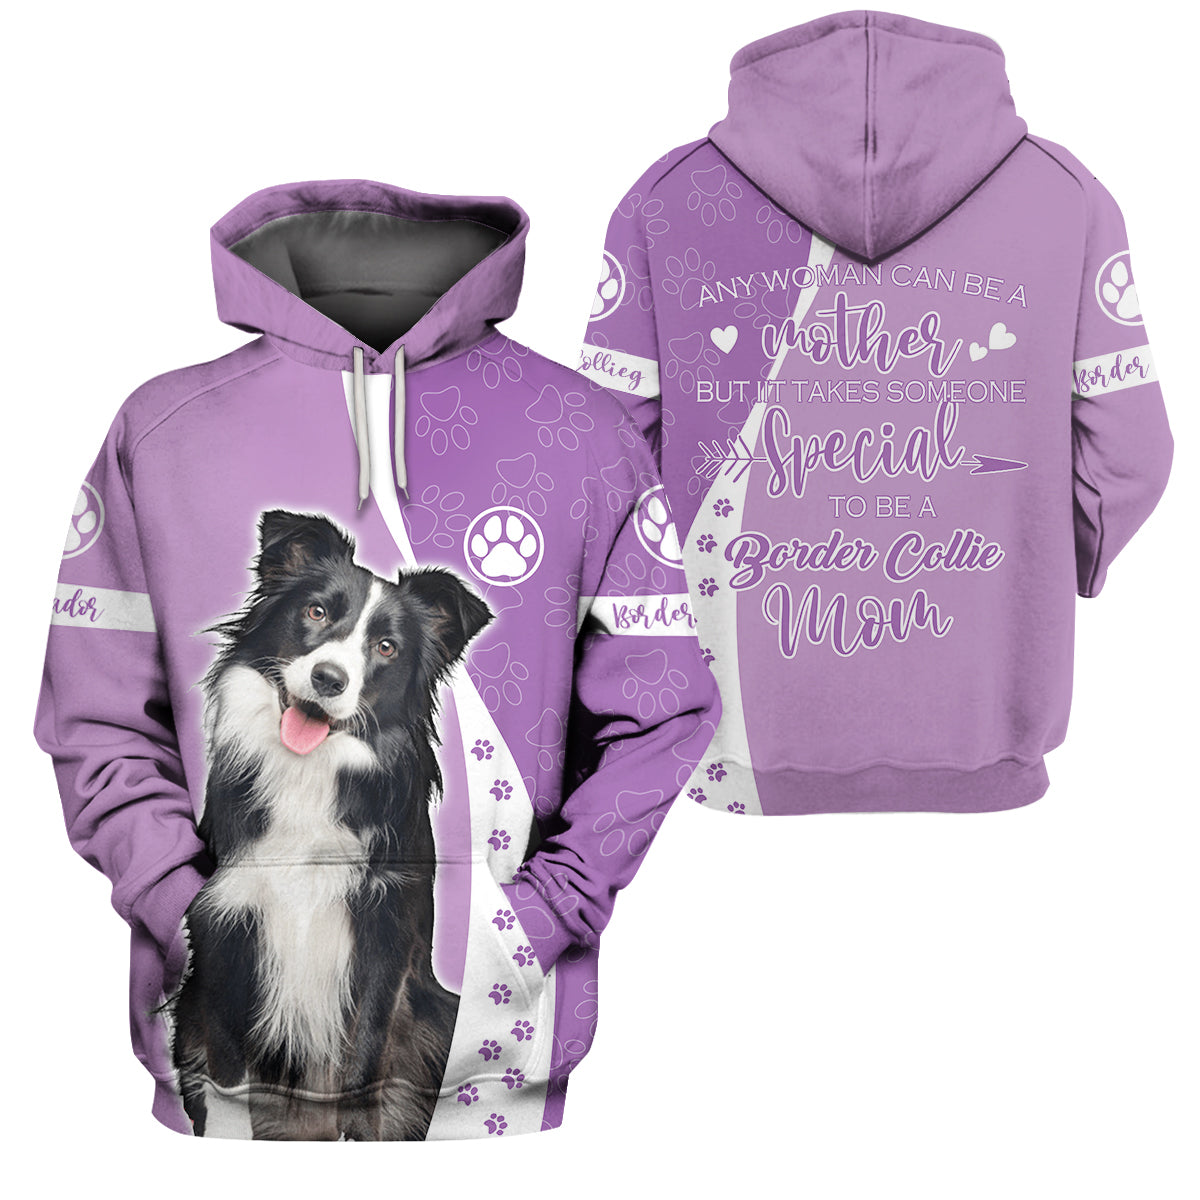 3d Apparel - any woman can be a mother - Border Collie